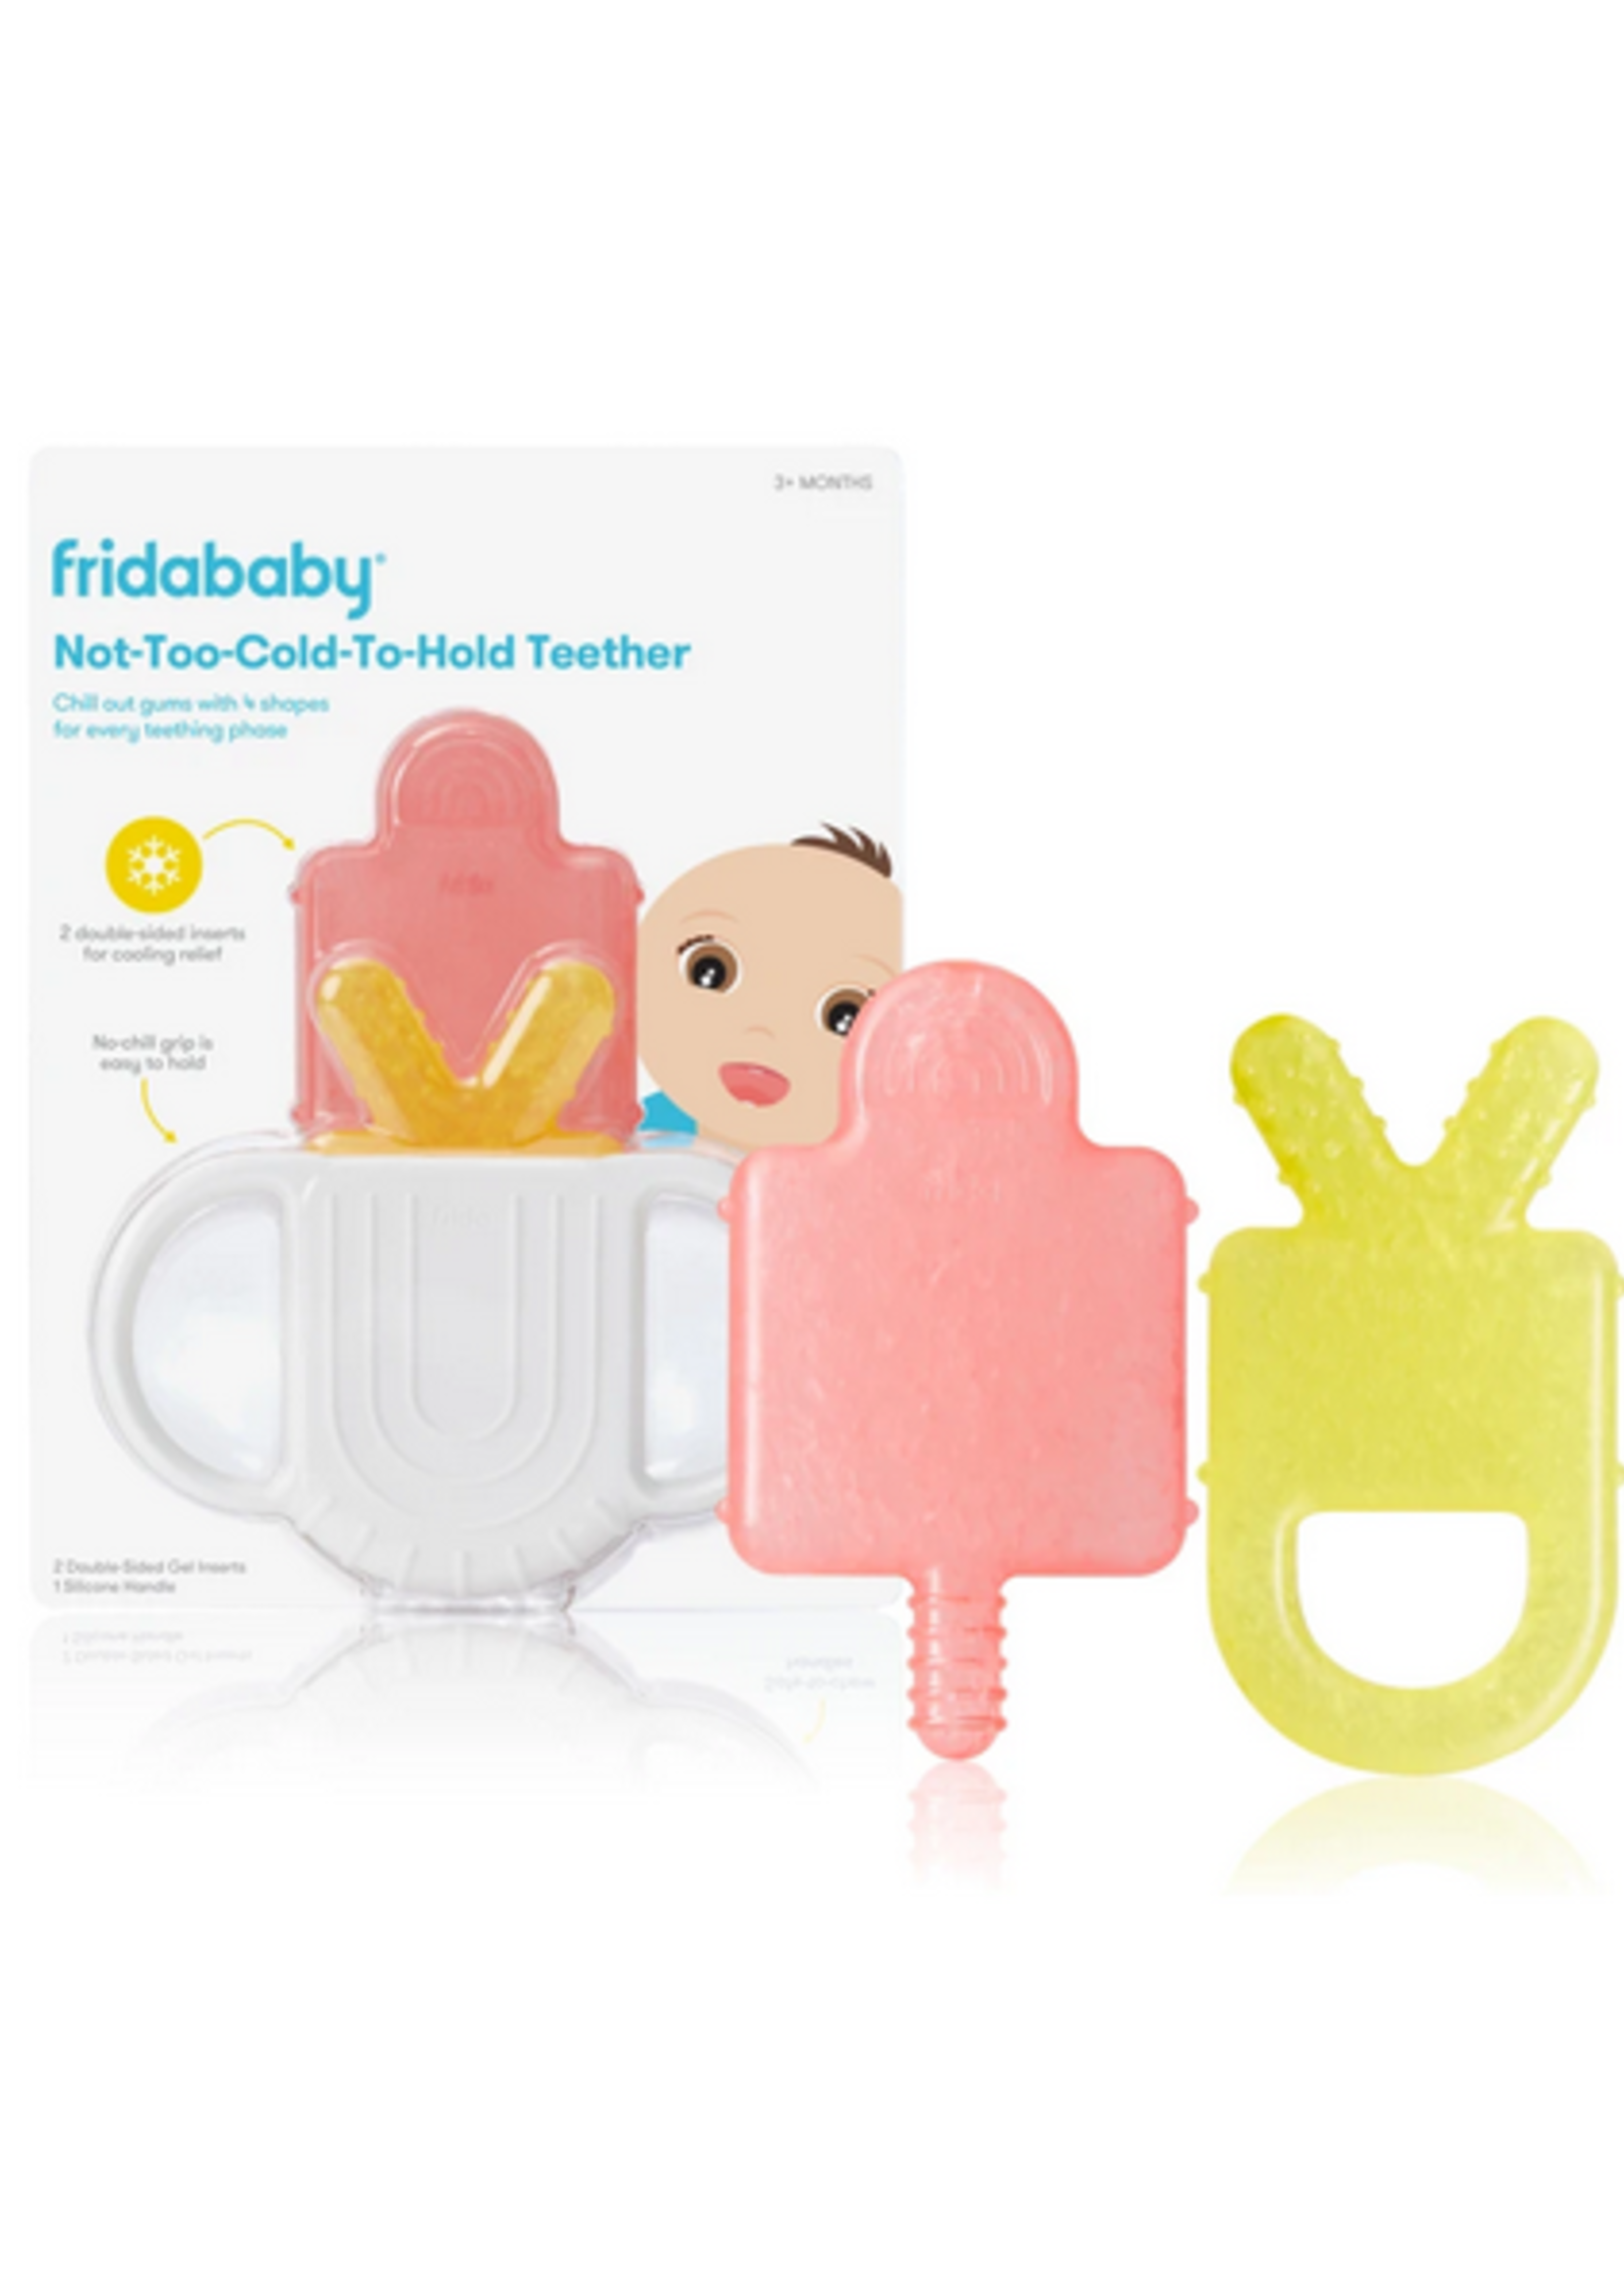 Elitaire Petite Not-to-Cold-to-Hold Teether